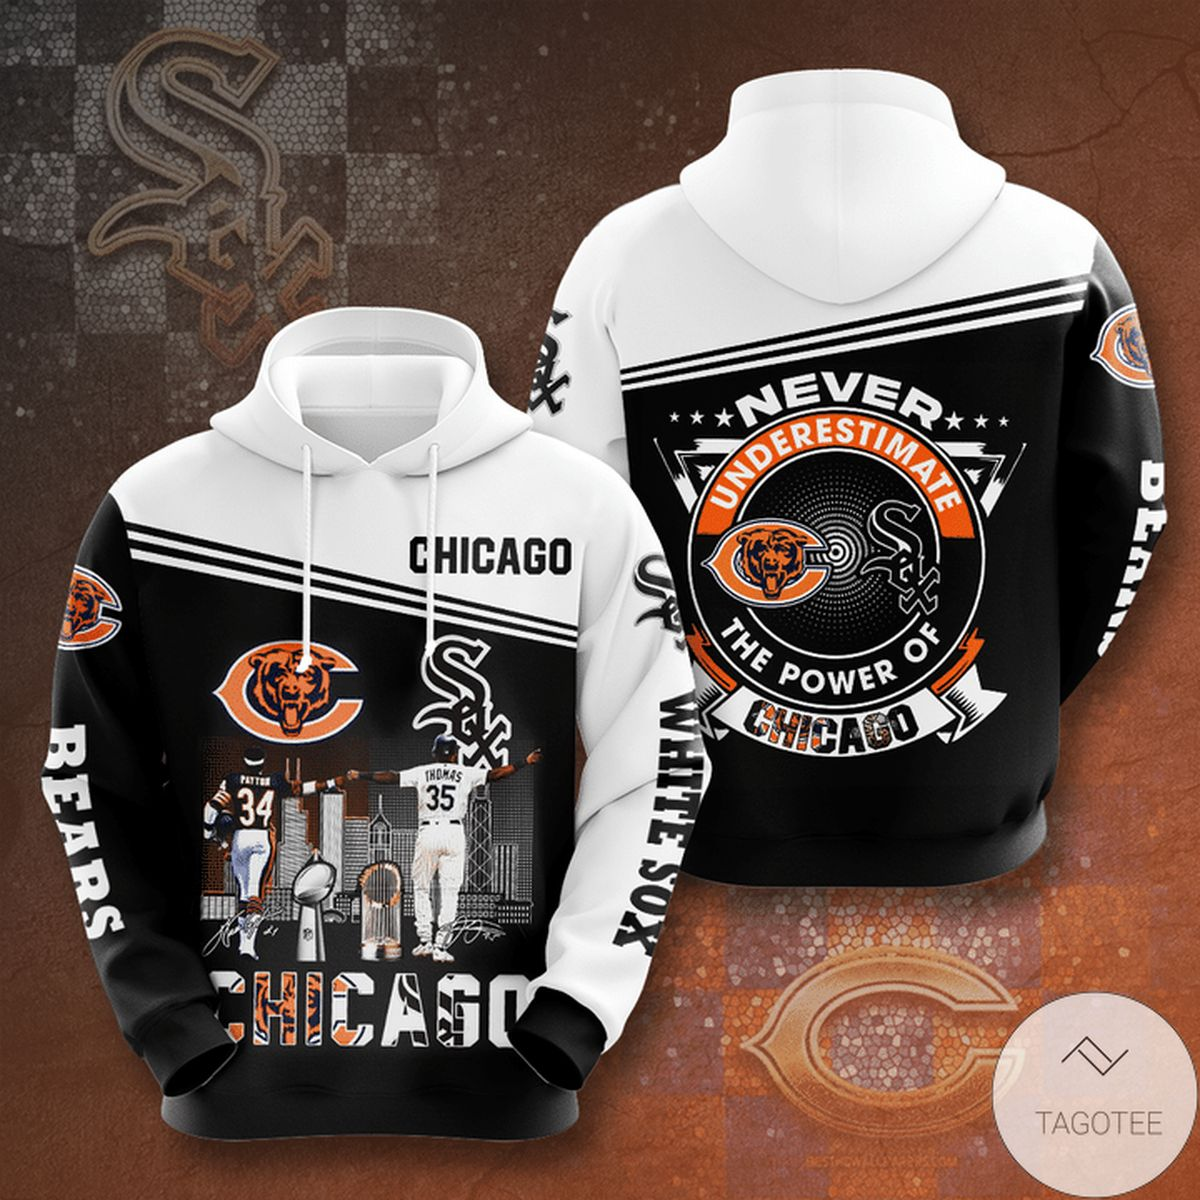 Chicago Bear And Chicago White Sox Never Underestimate The Power Of Chicago 3d Hoodie